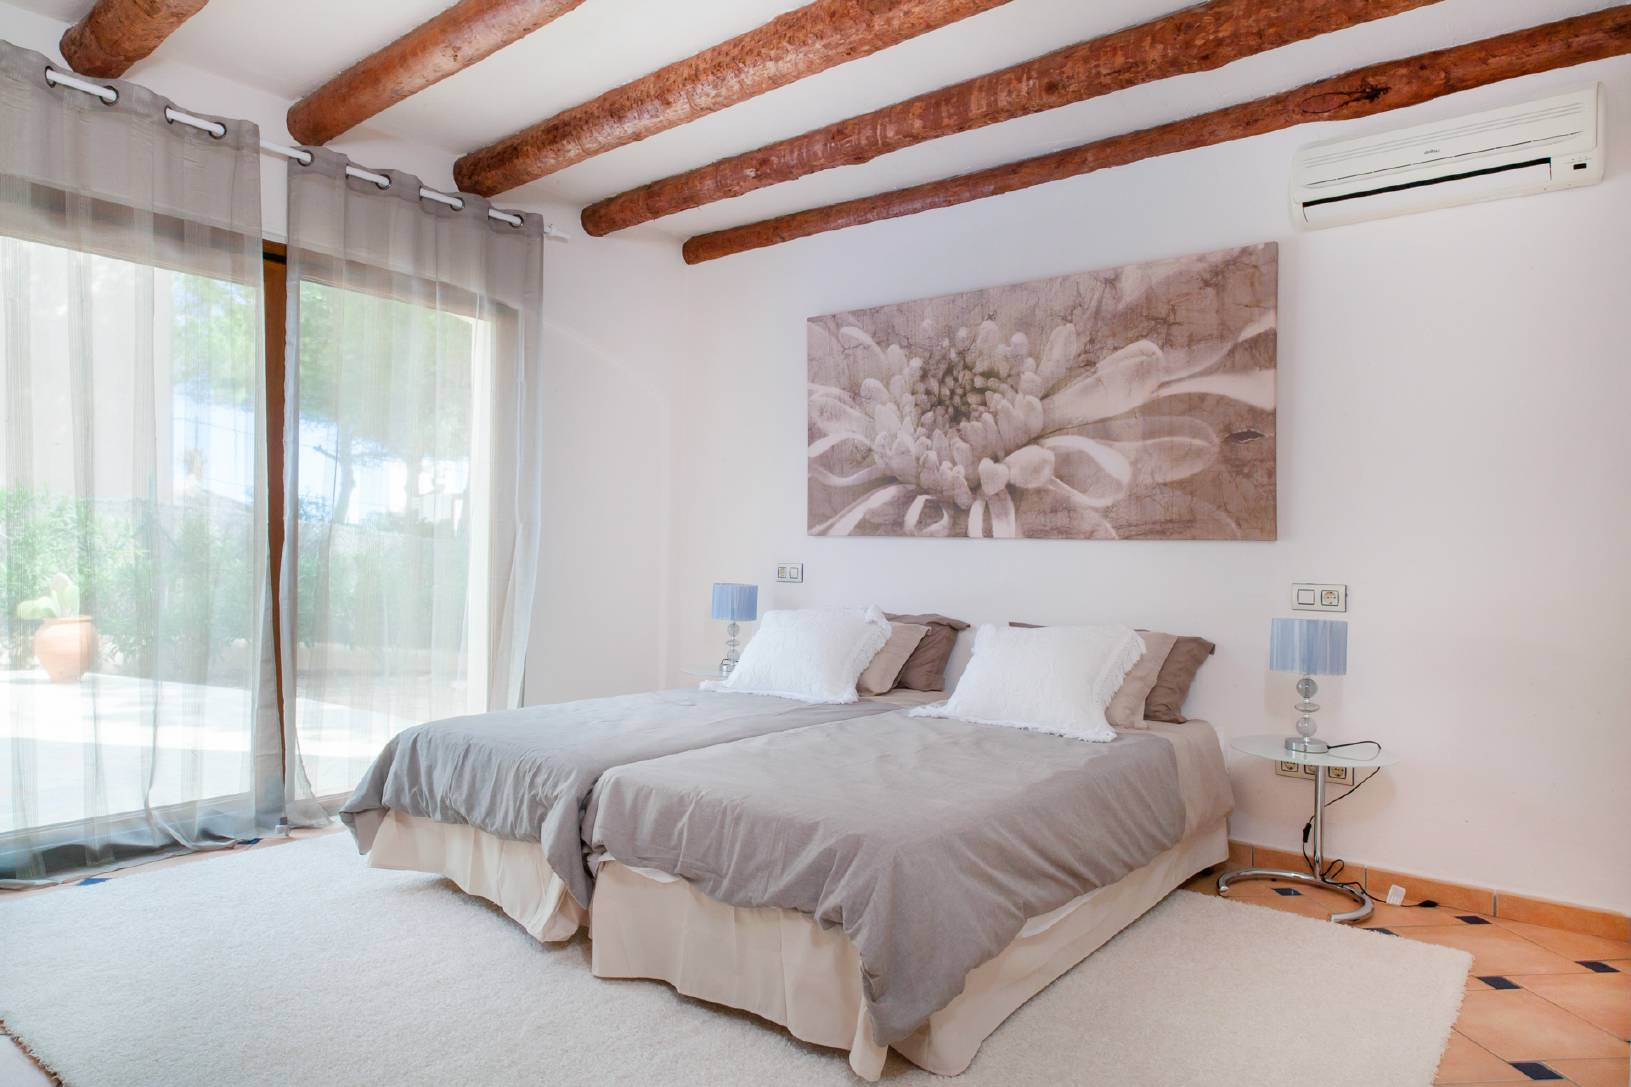 2 bed room for rent in ibiza